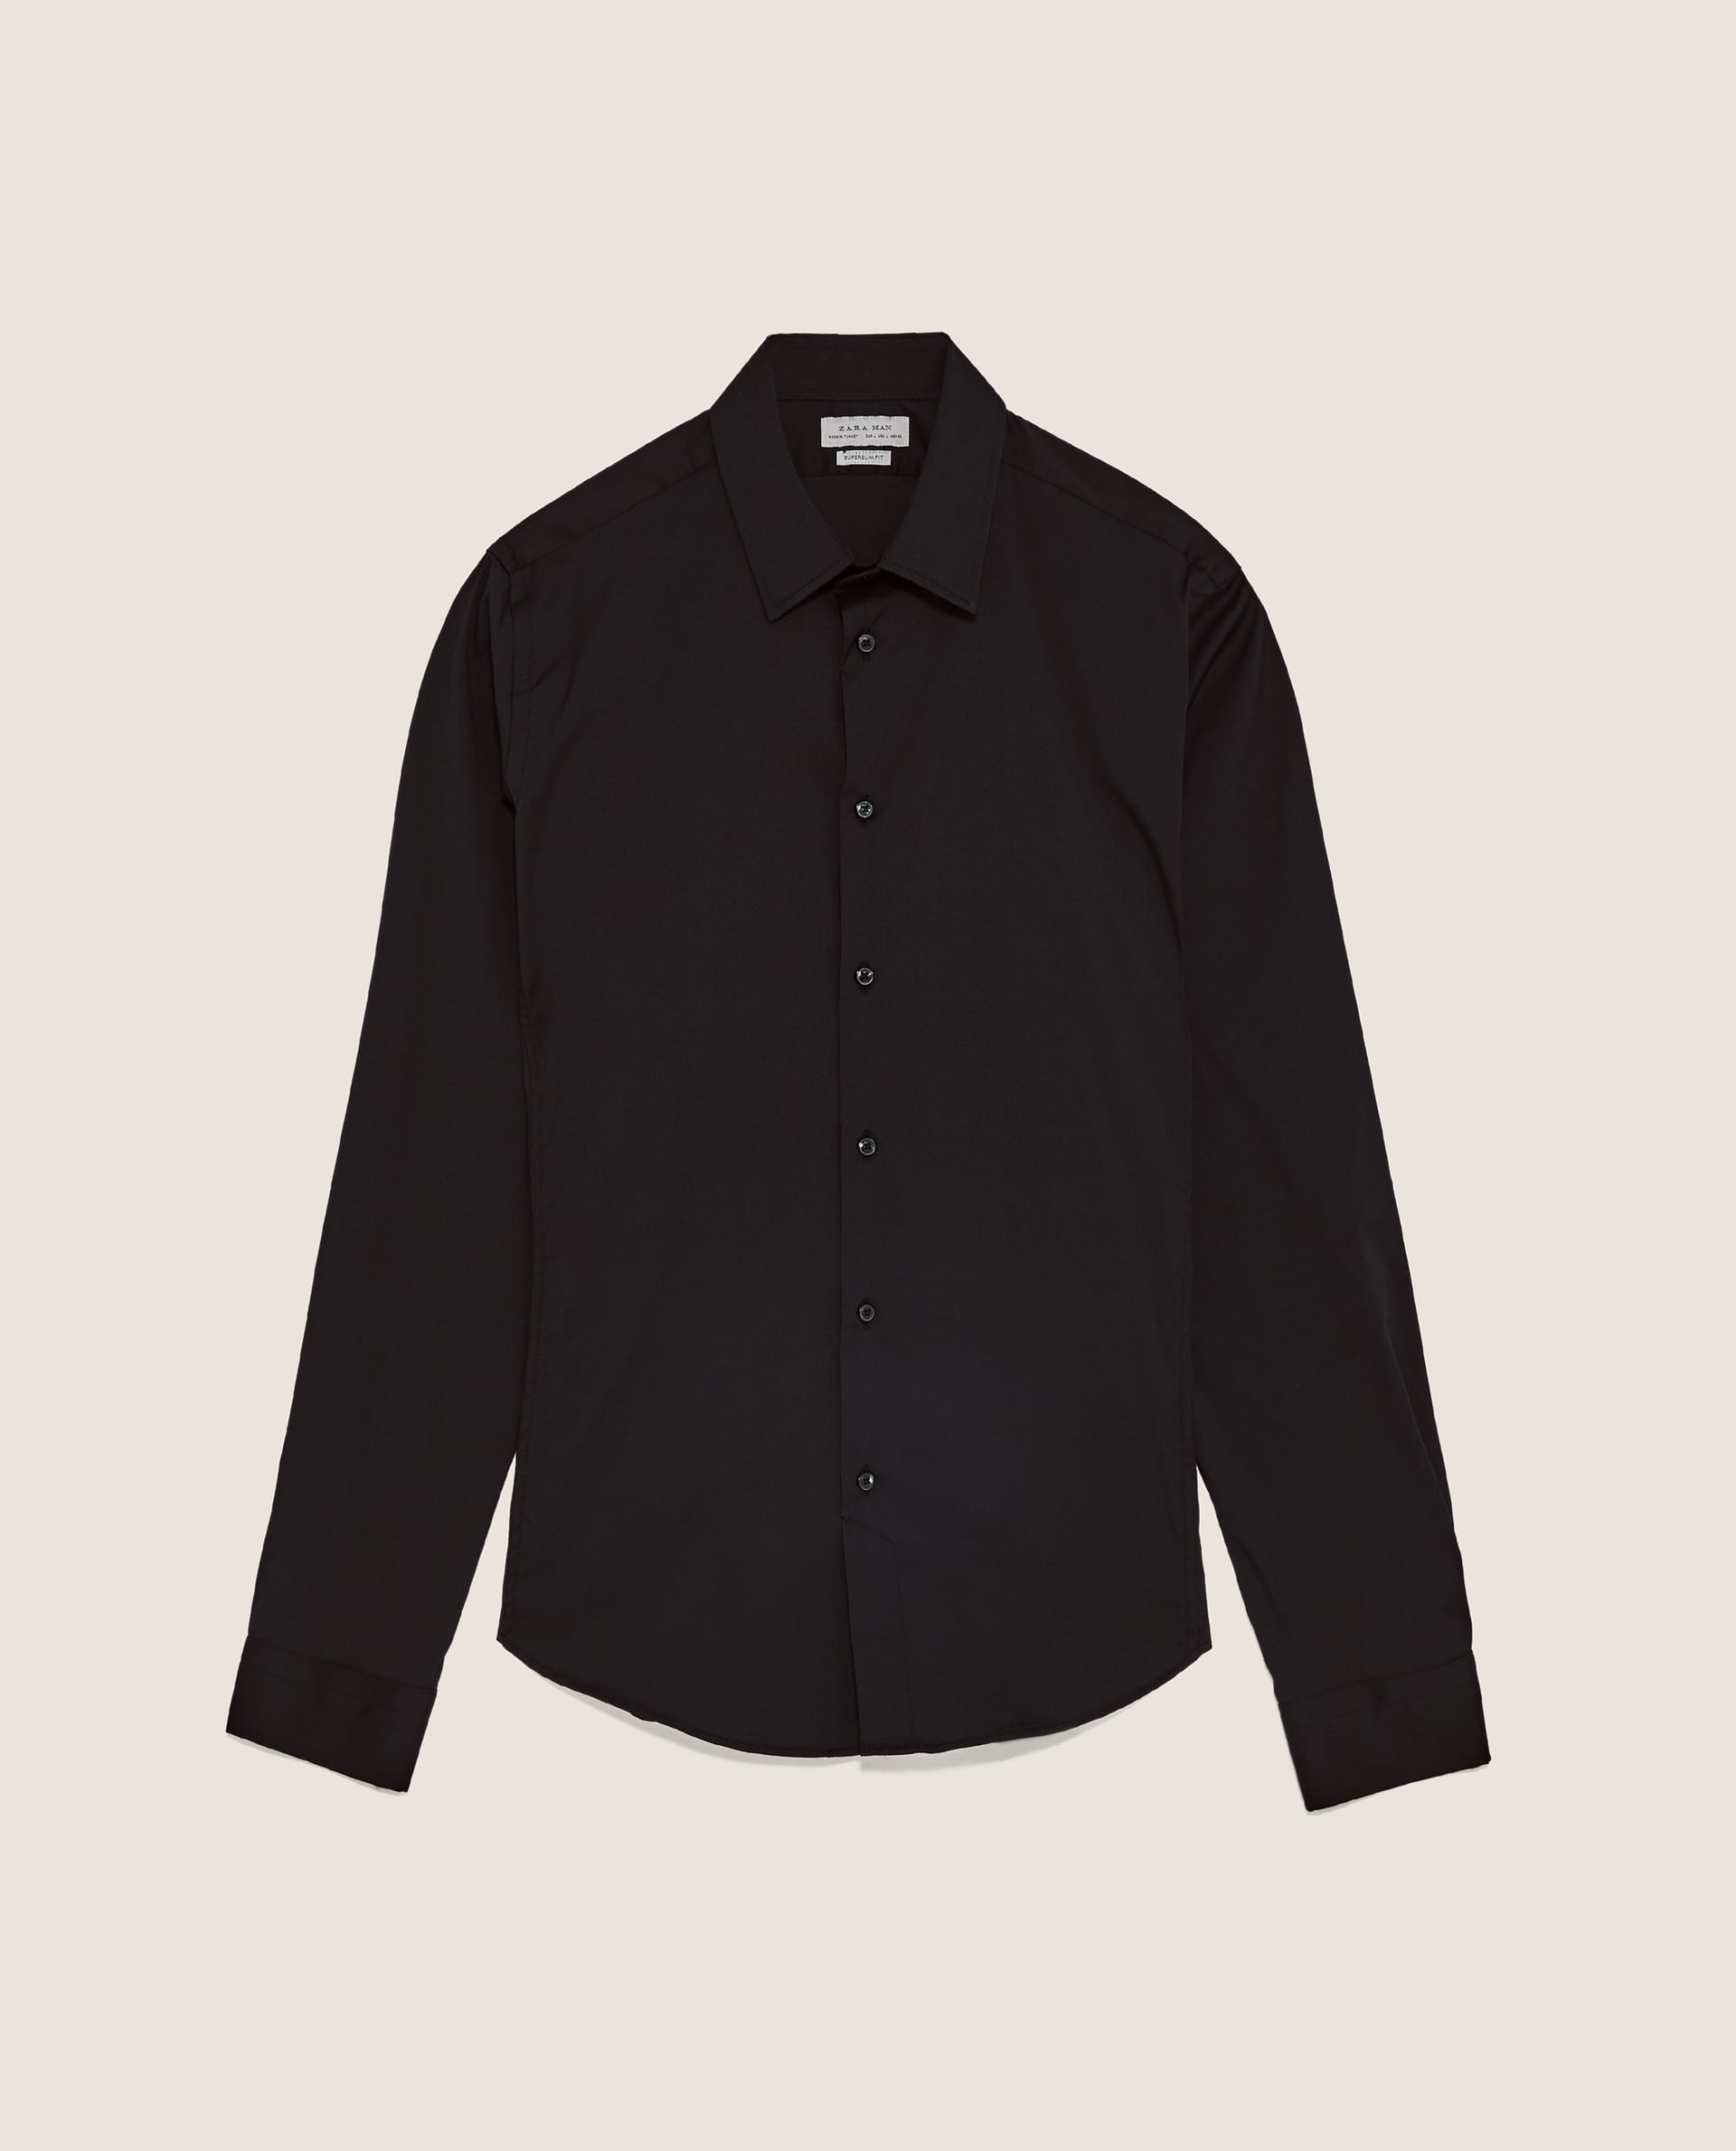 ZARA MAN BLACK SHIRT